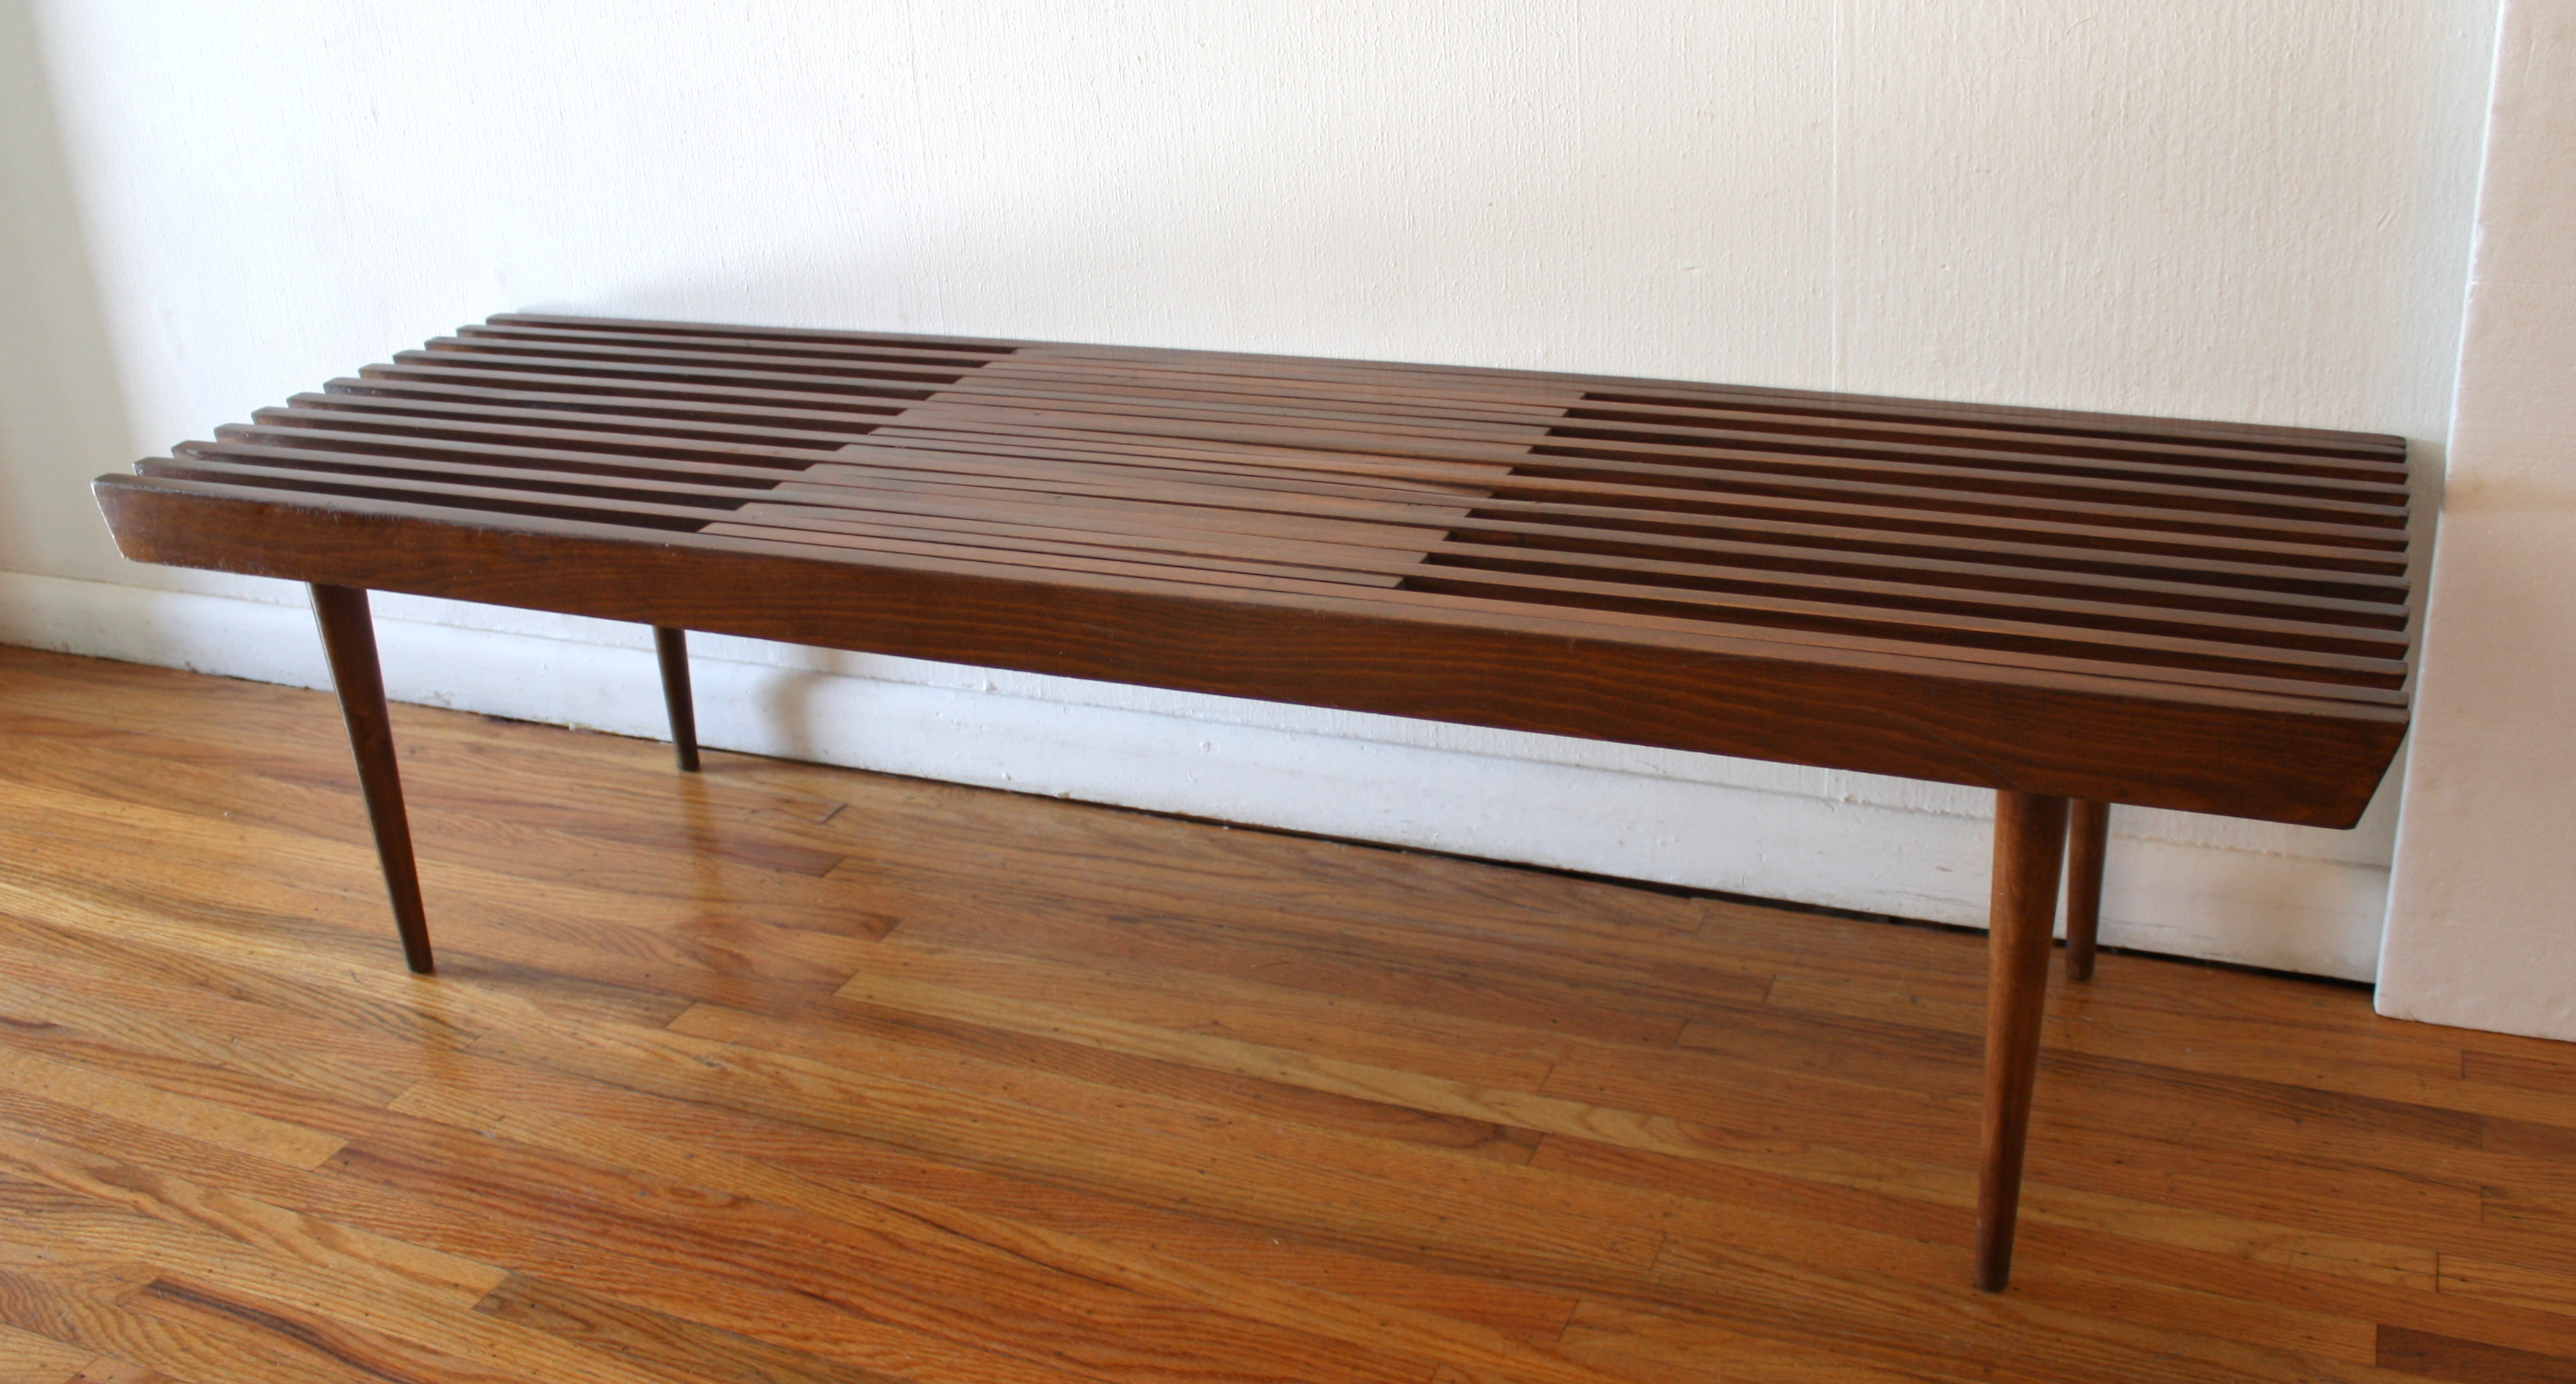 Extending Coffee Table Furniture Height Adjustable Extending